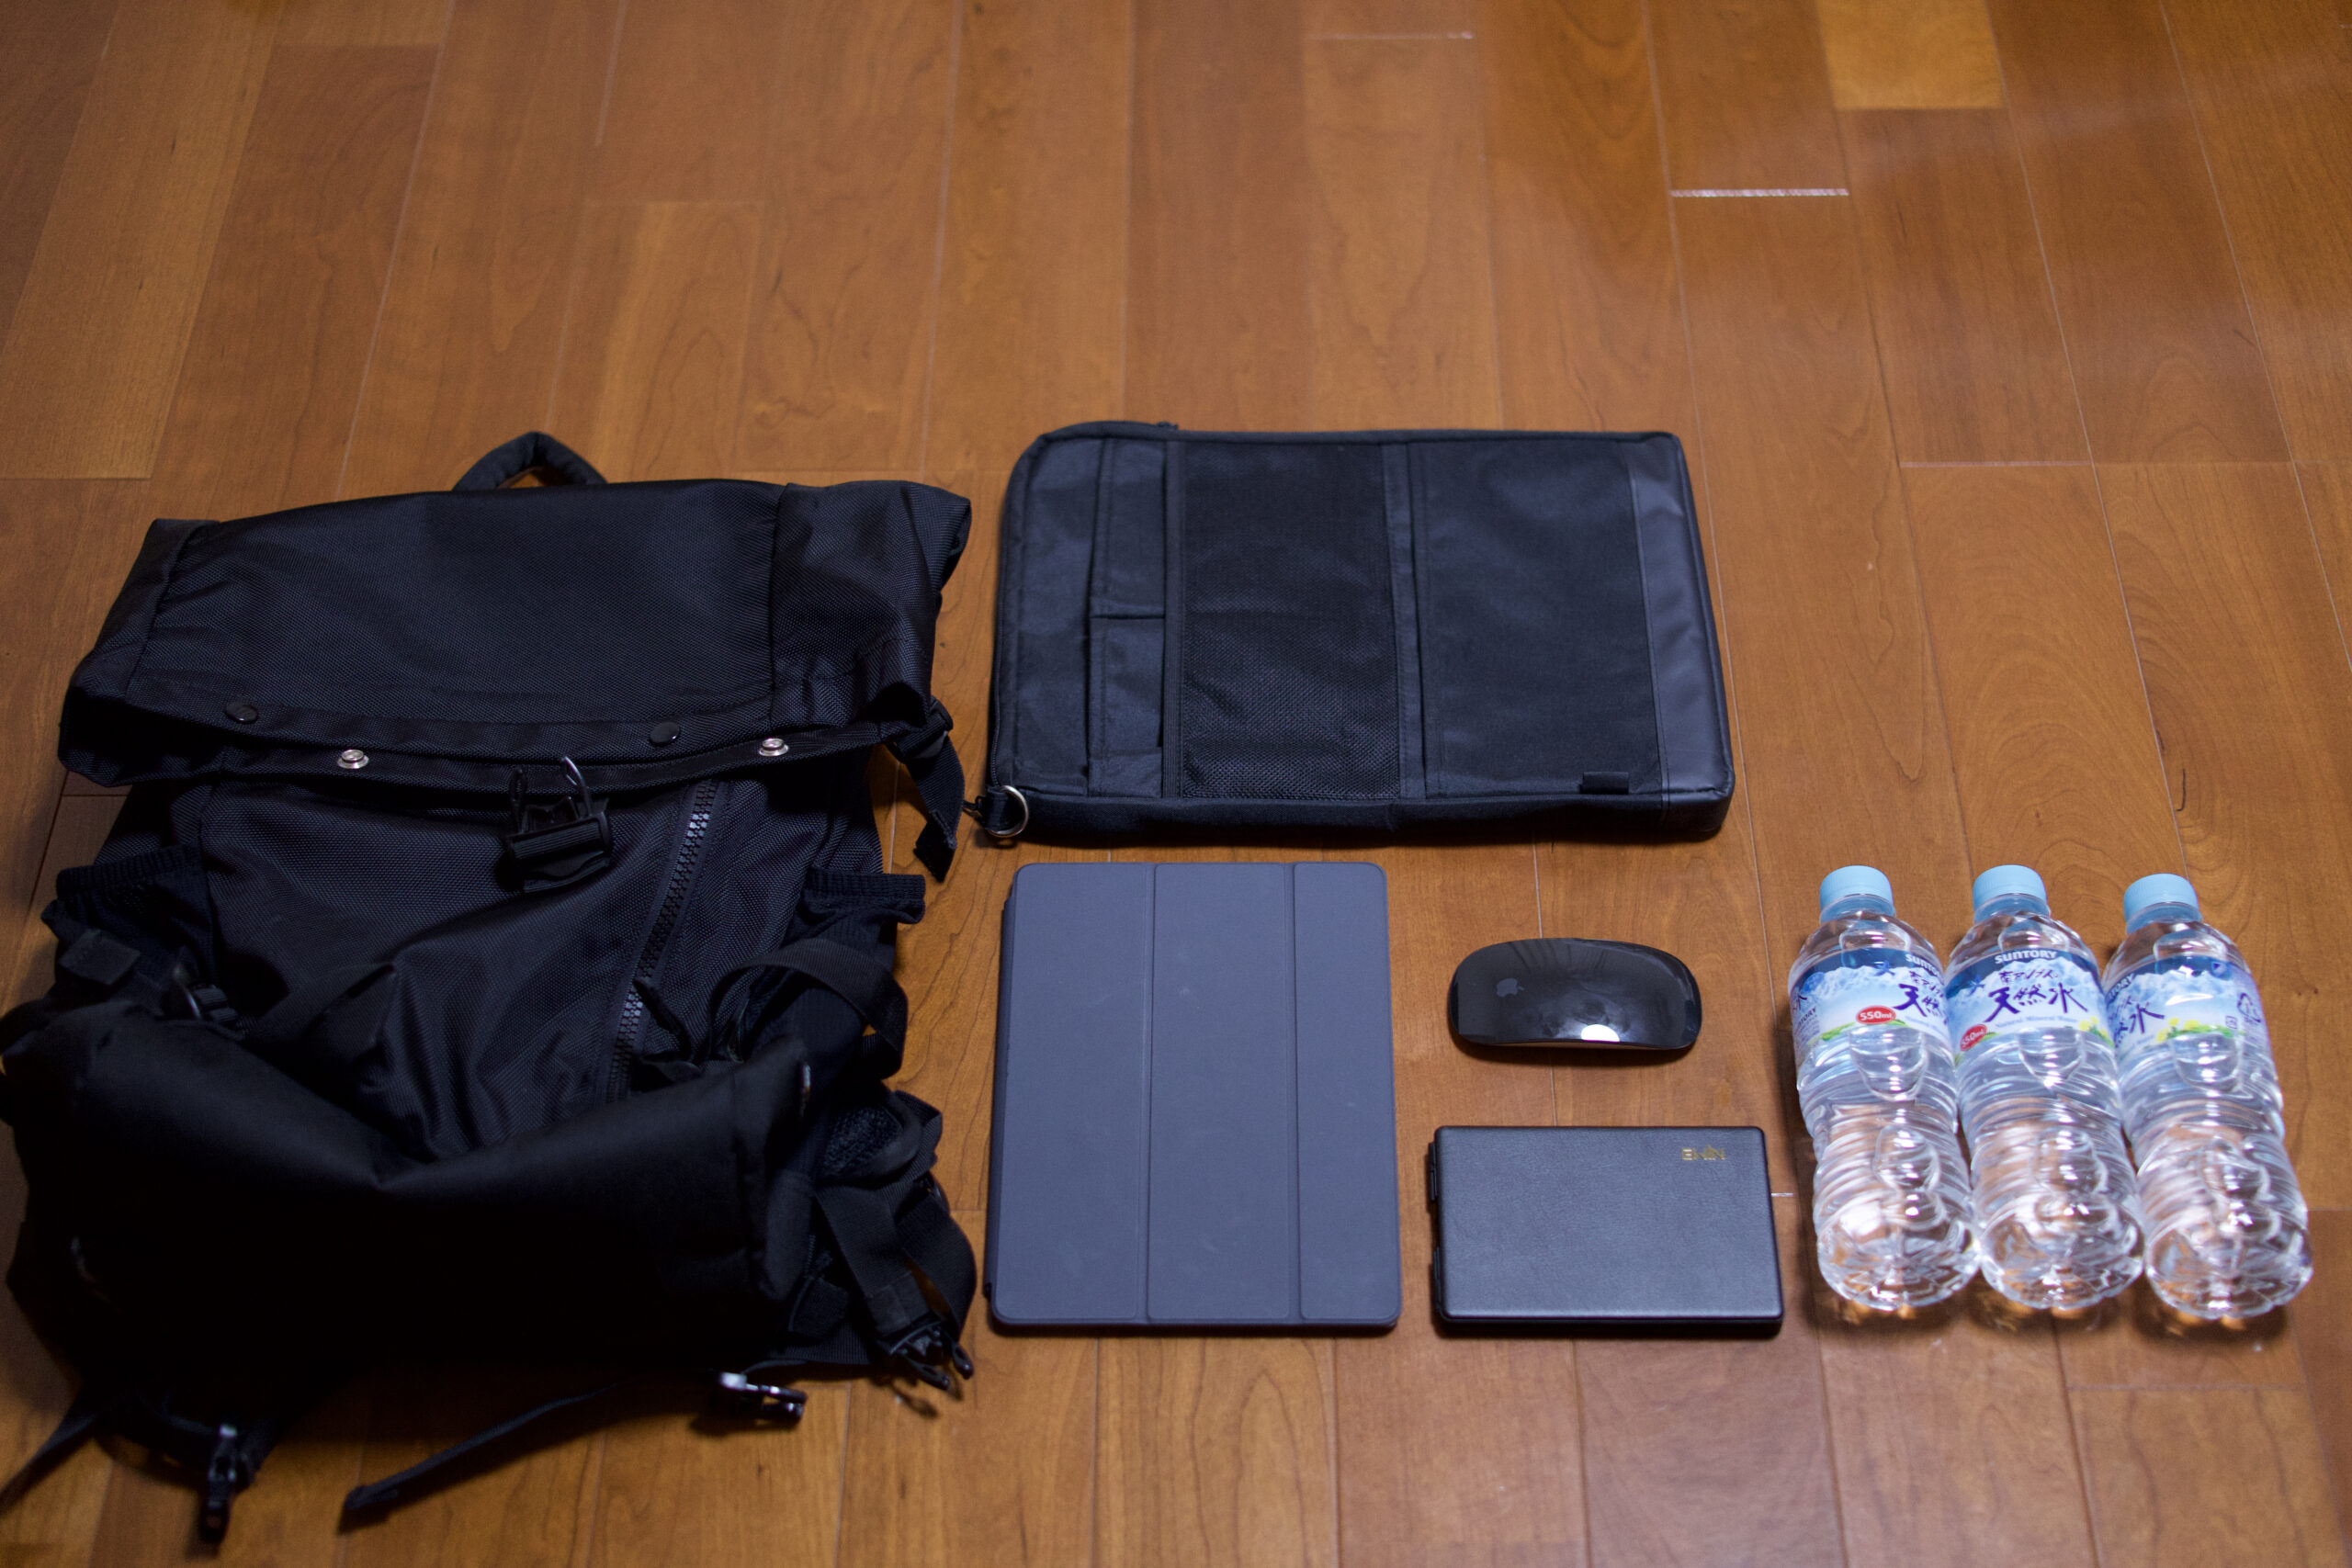 contents of bag